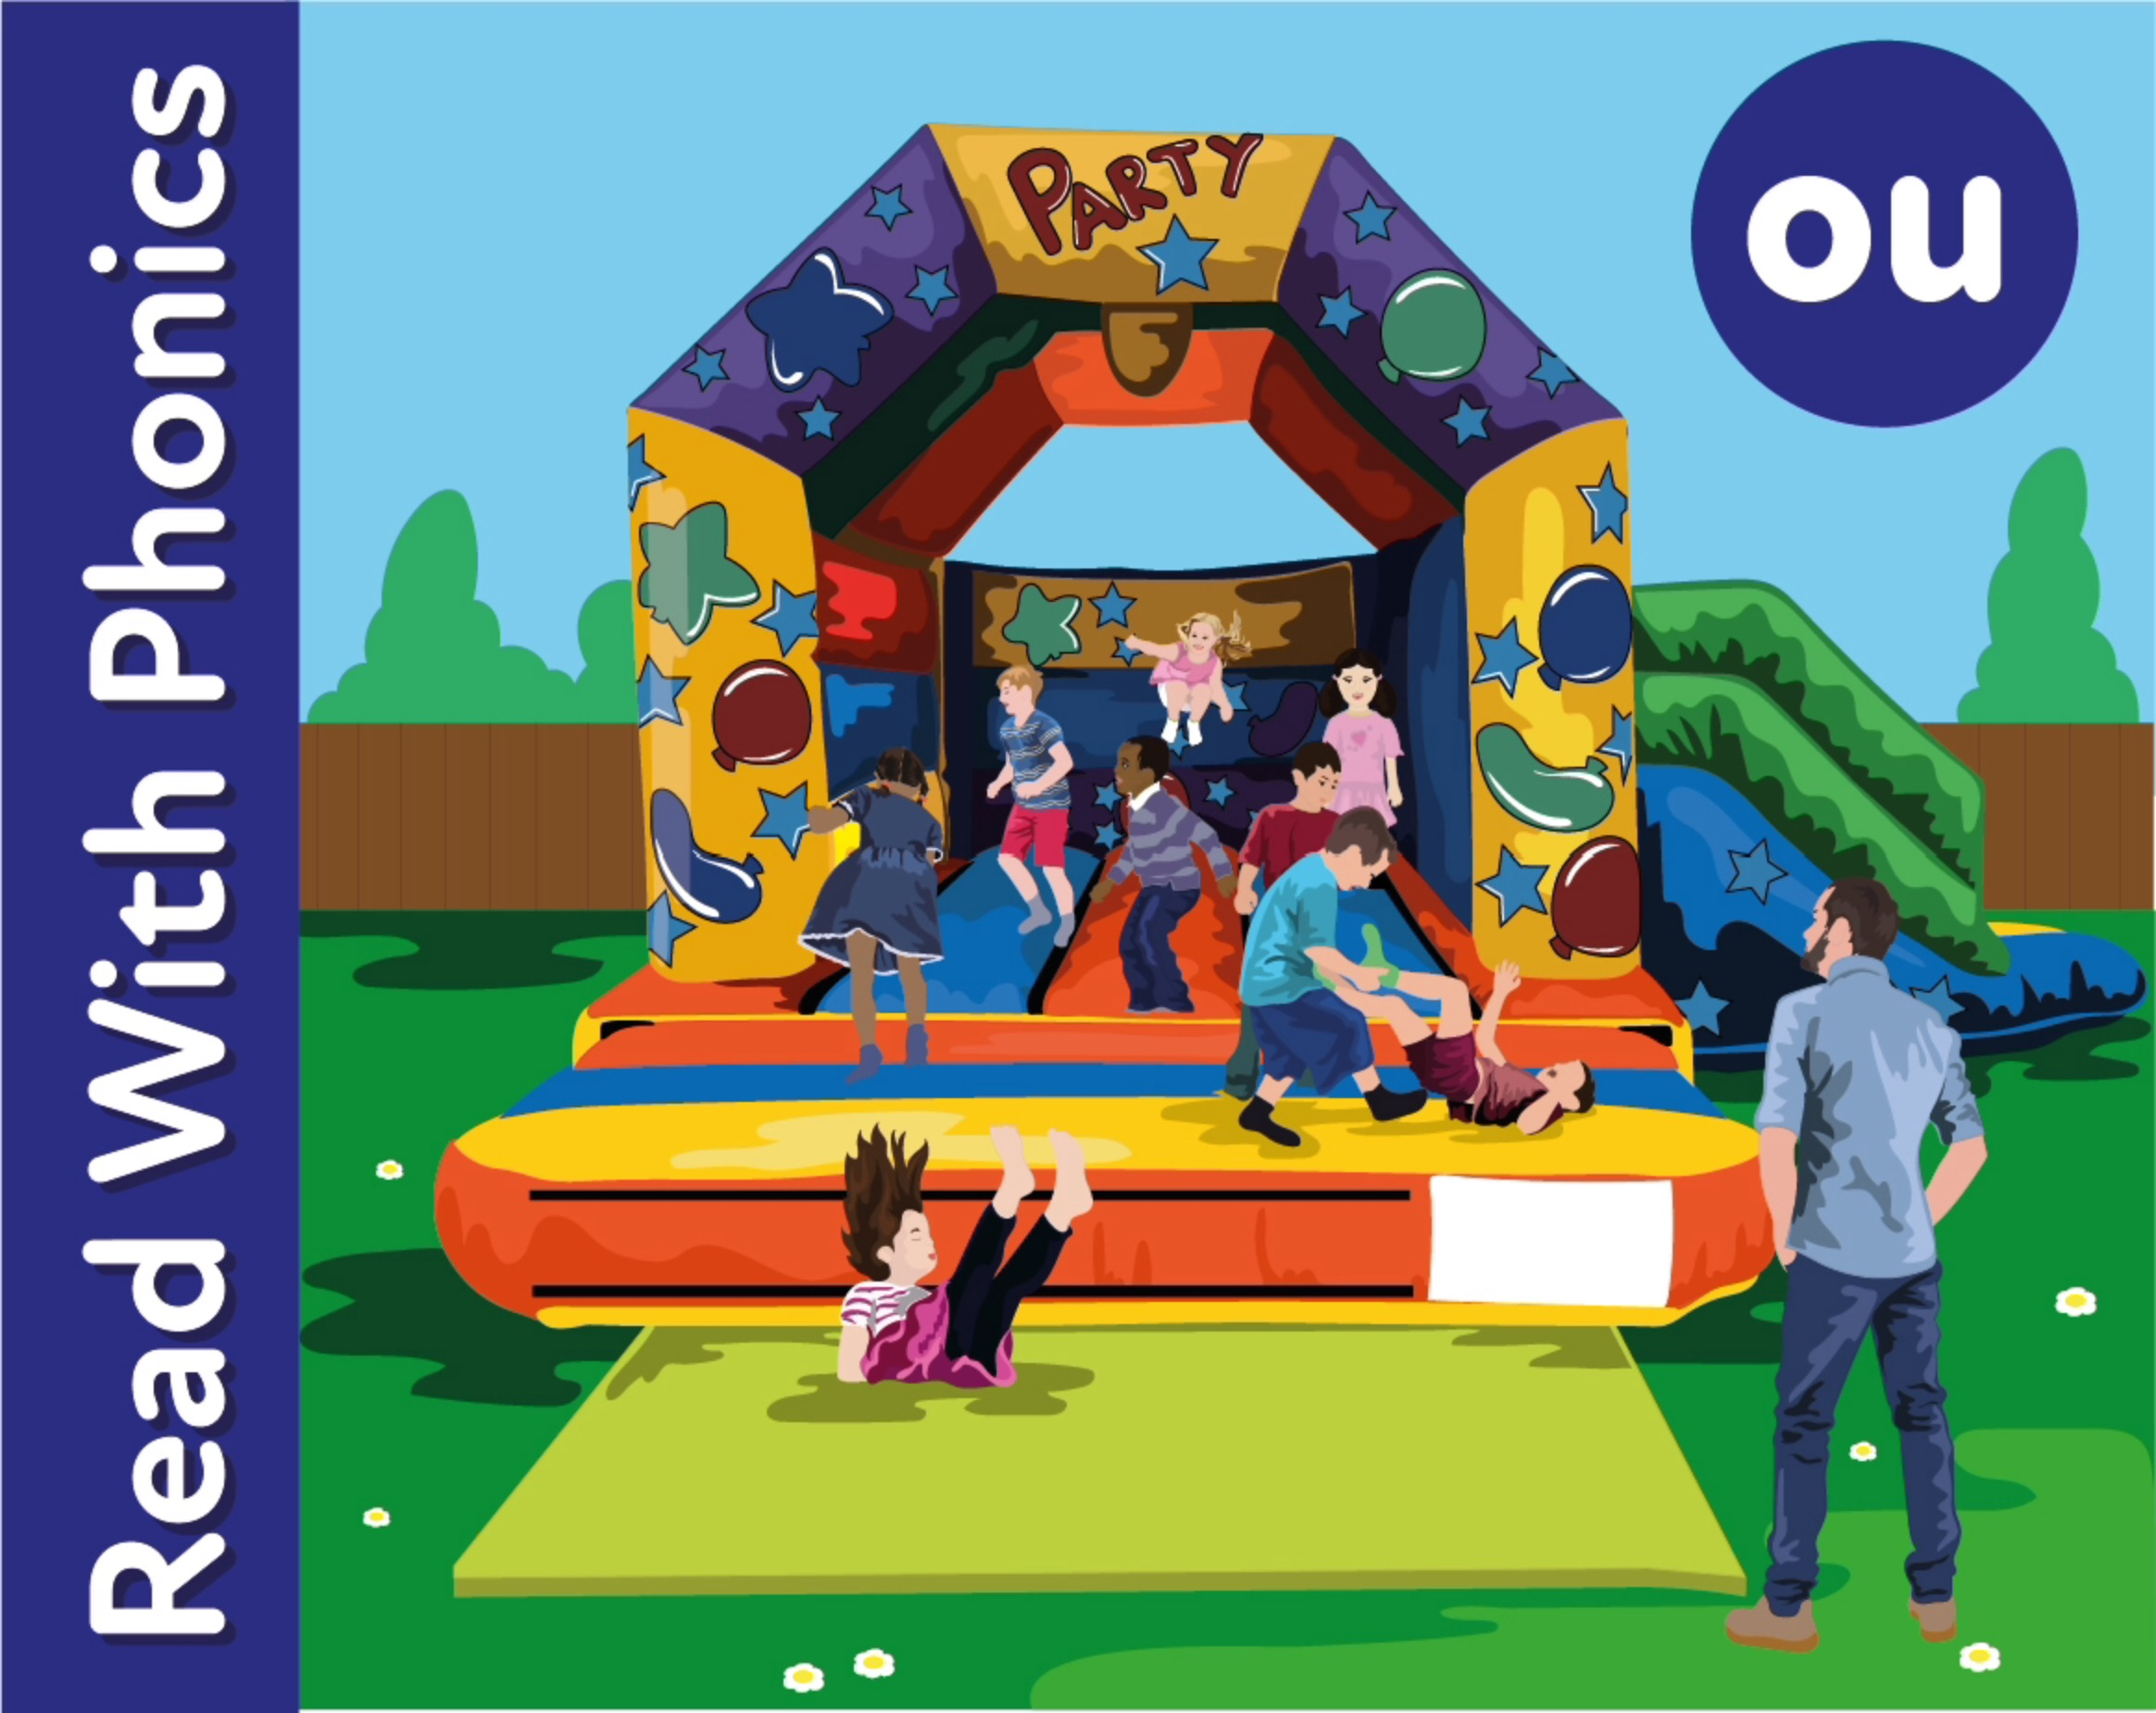 The Bouncy Castle : Learn The Phonic Sound  'ou'